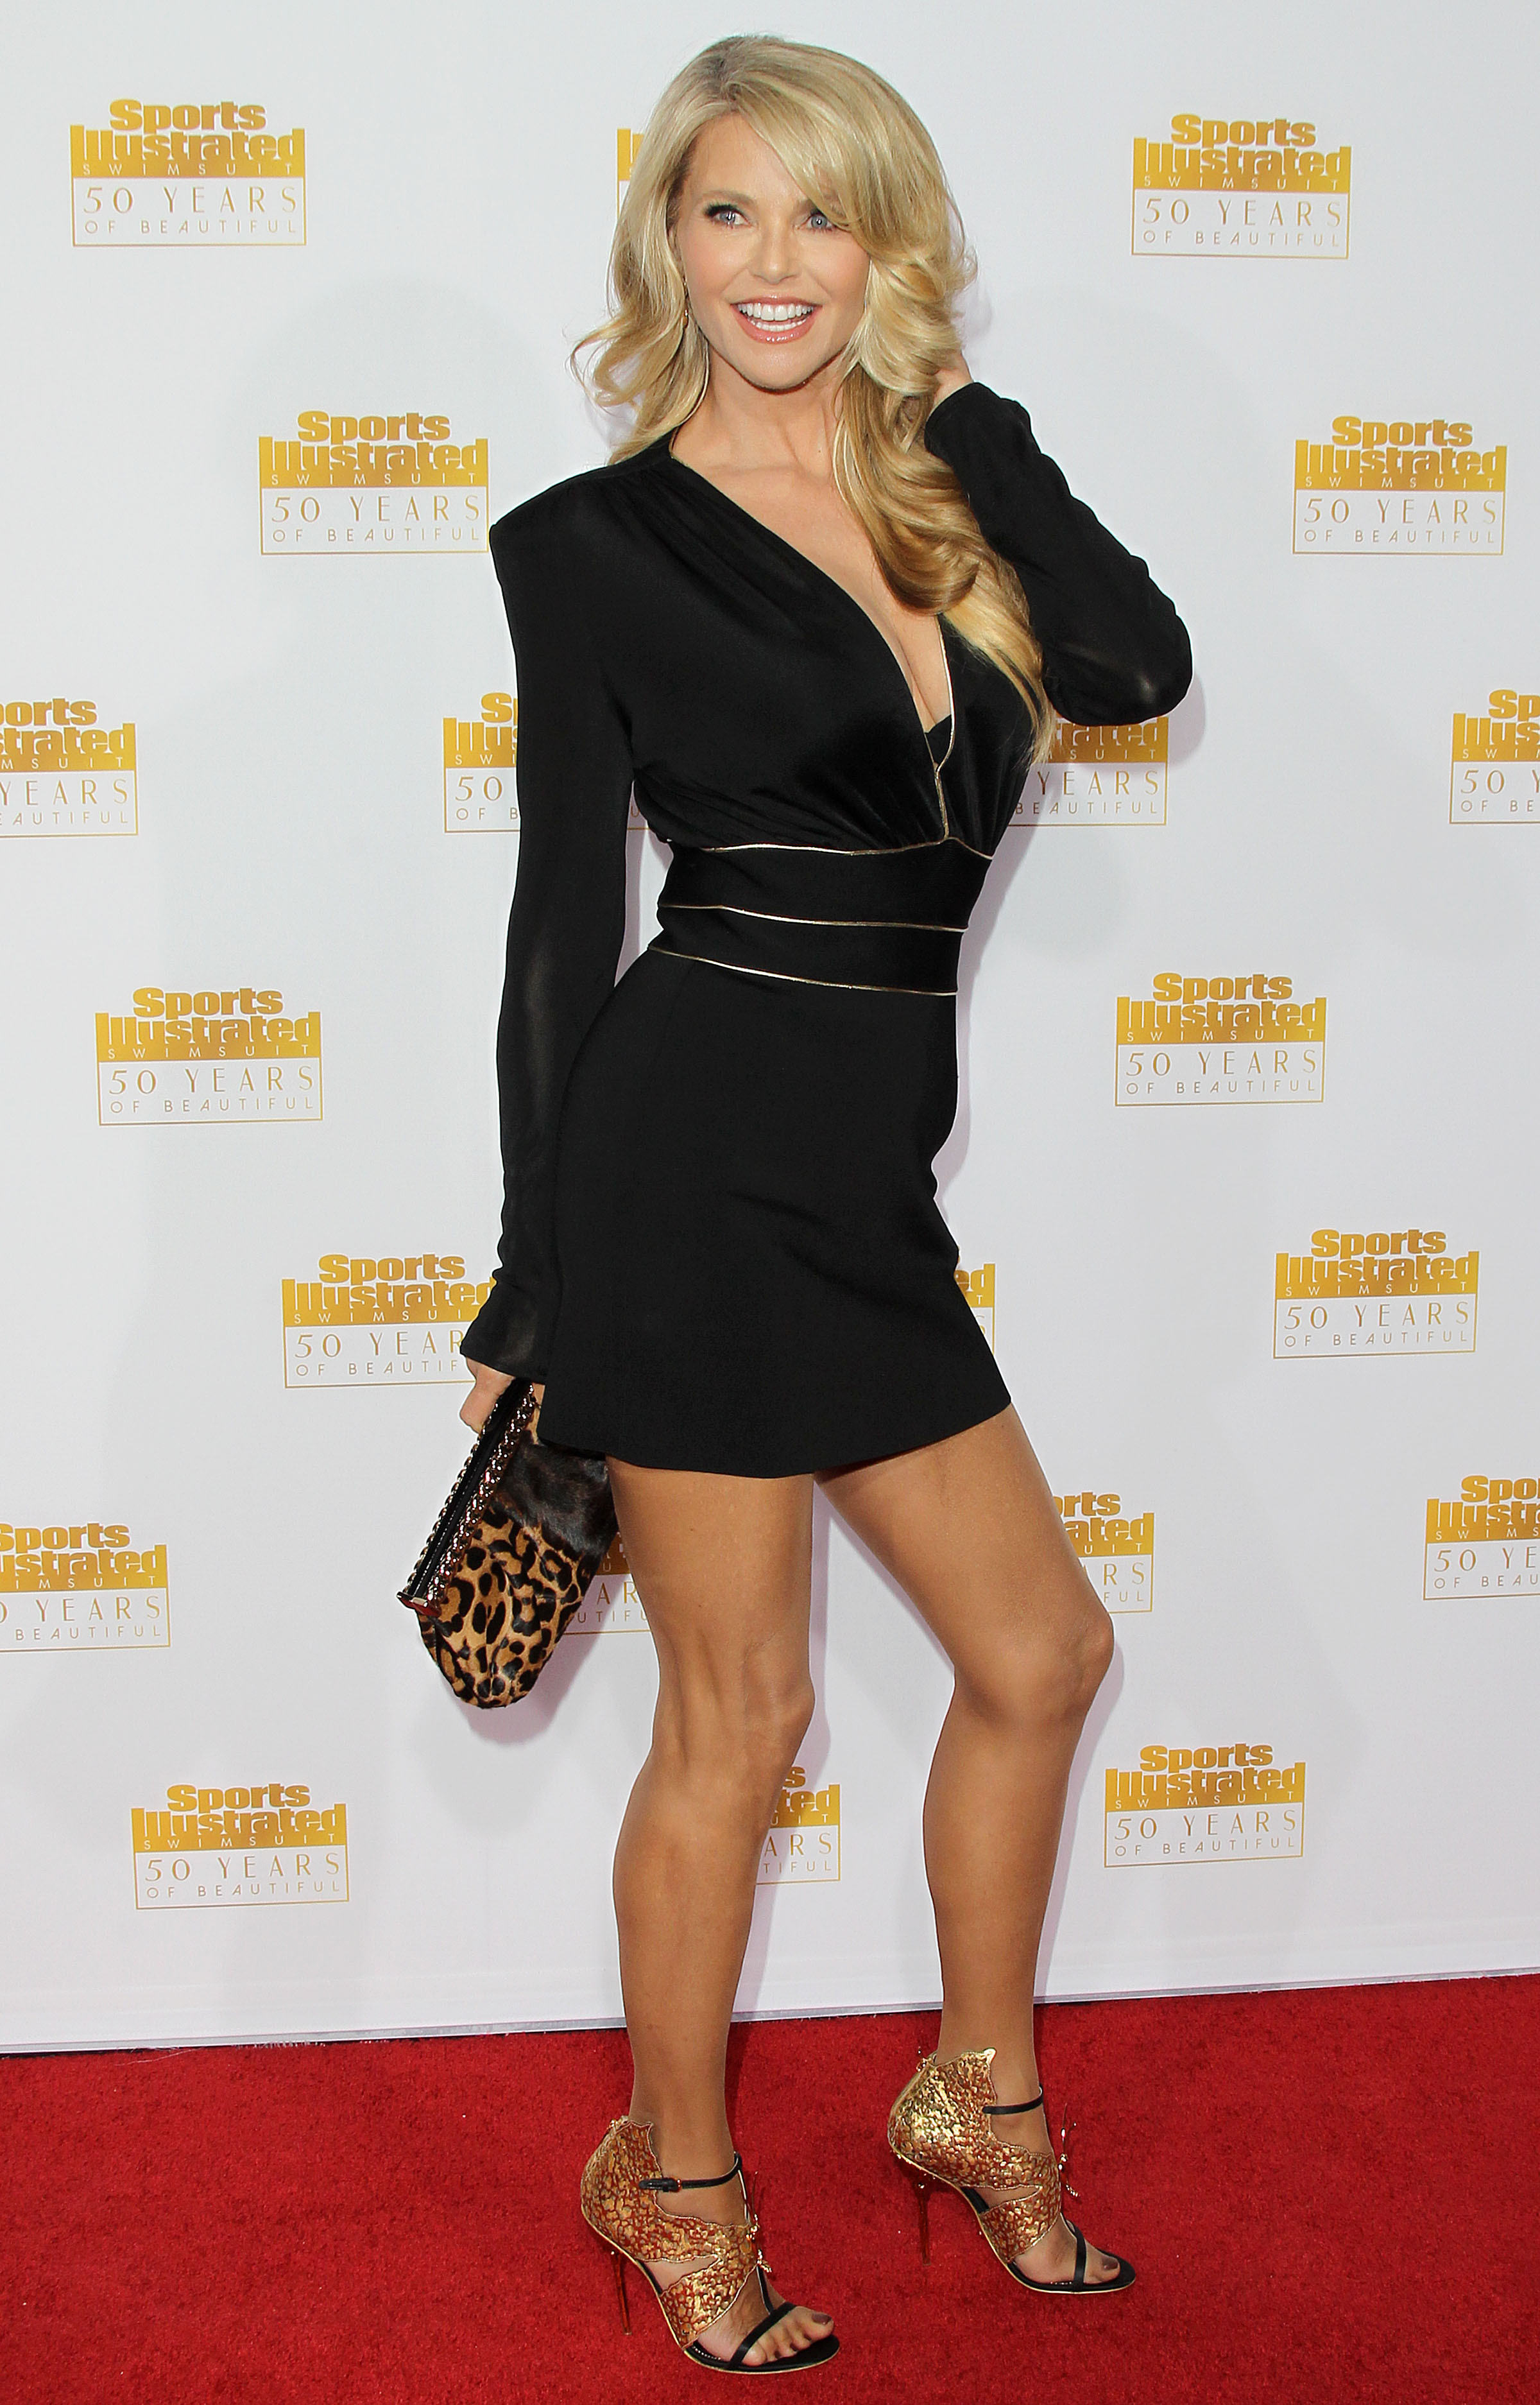 CHRISTIE BRINKLEY at SI Swimsuit Issue 50th Anniversary